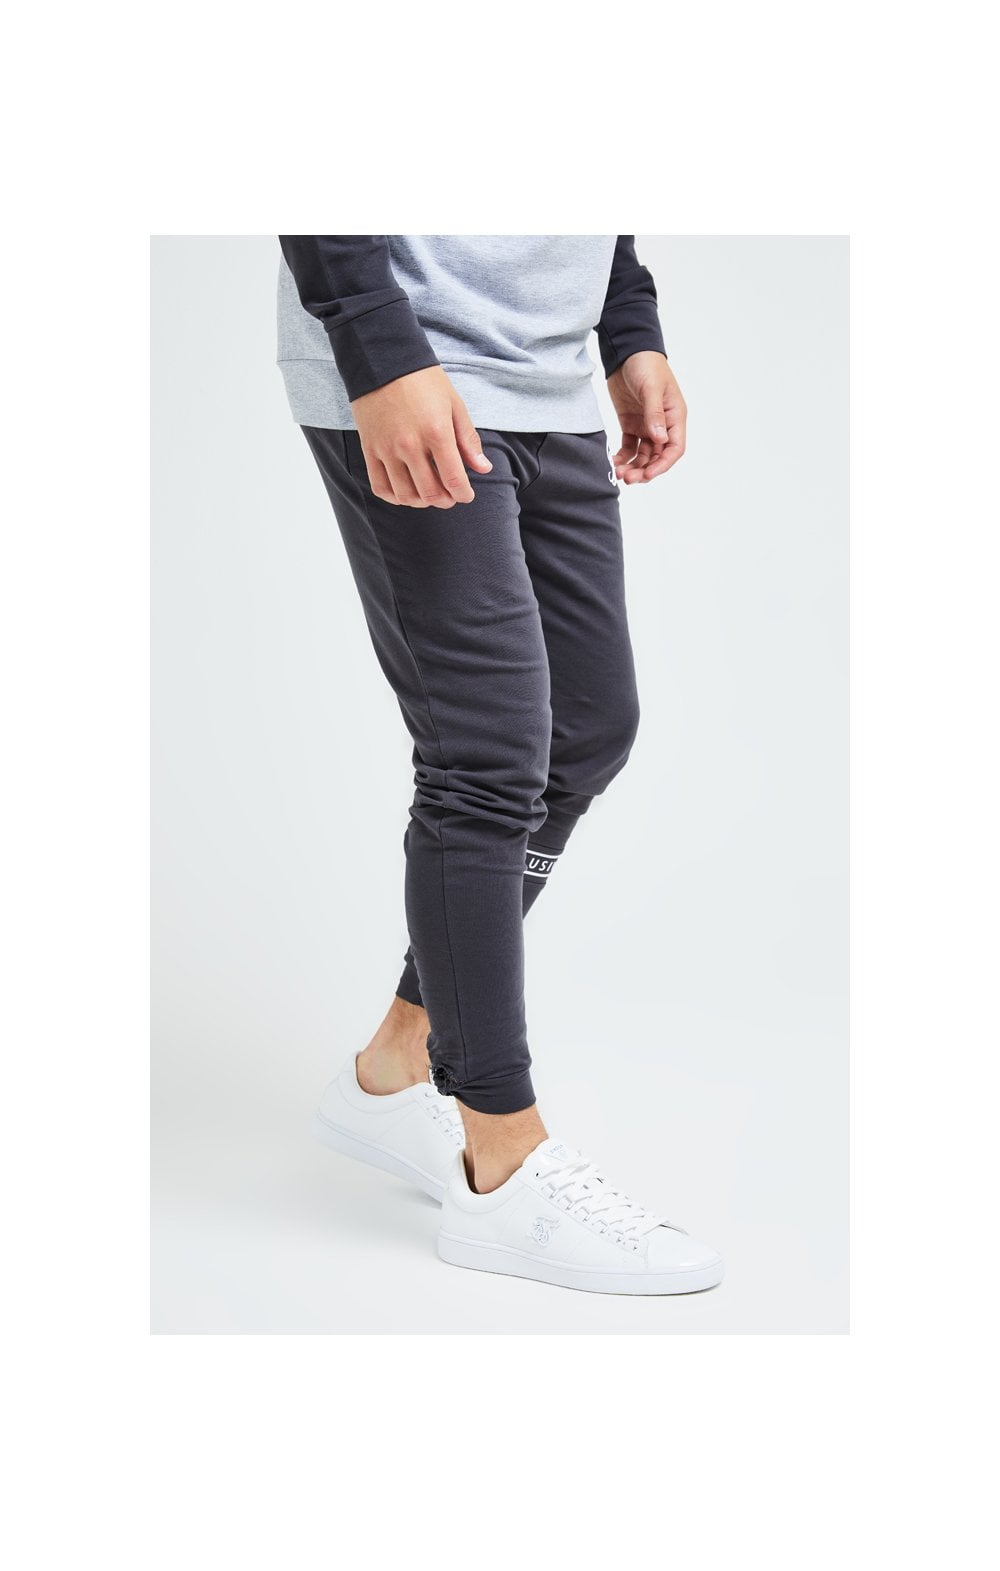 Illusive London Revere Jogger - Dark Grey & Light Grey Marl (1)